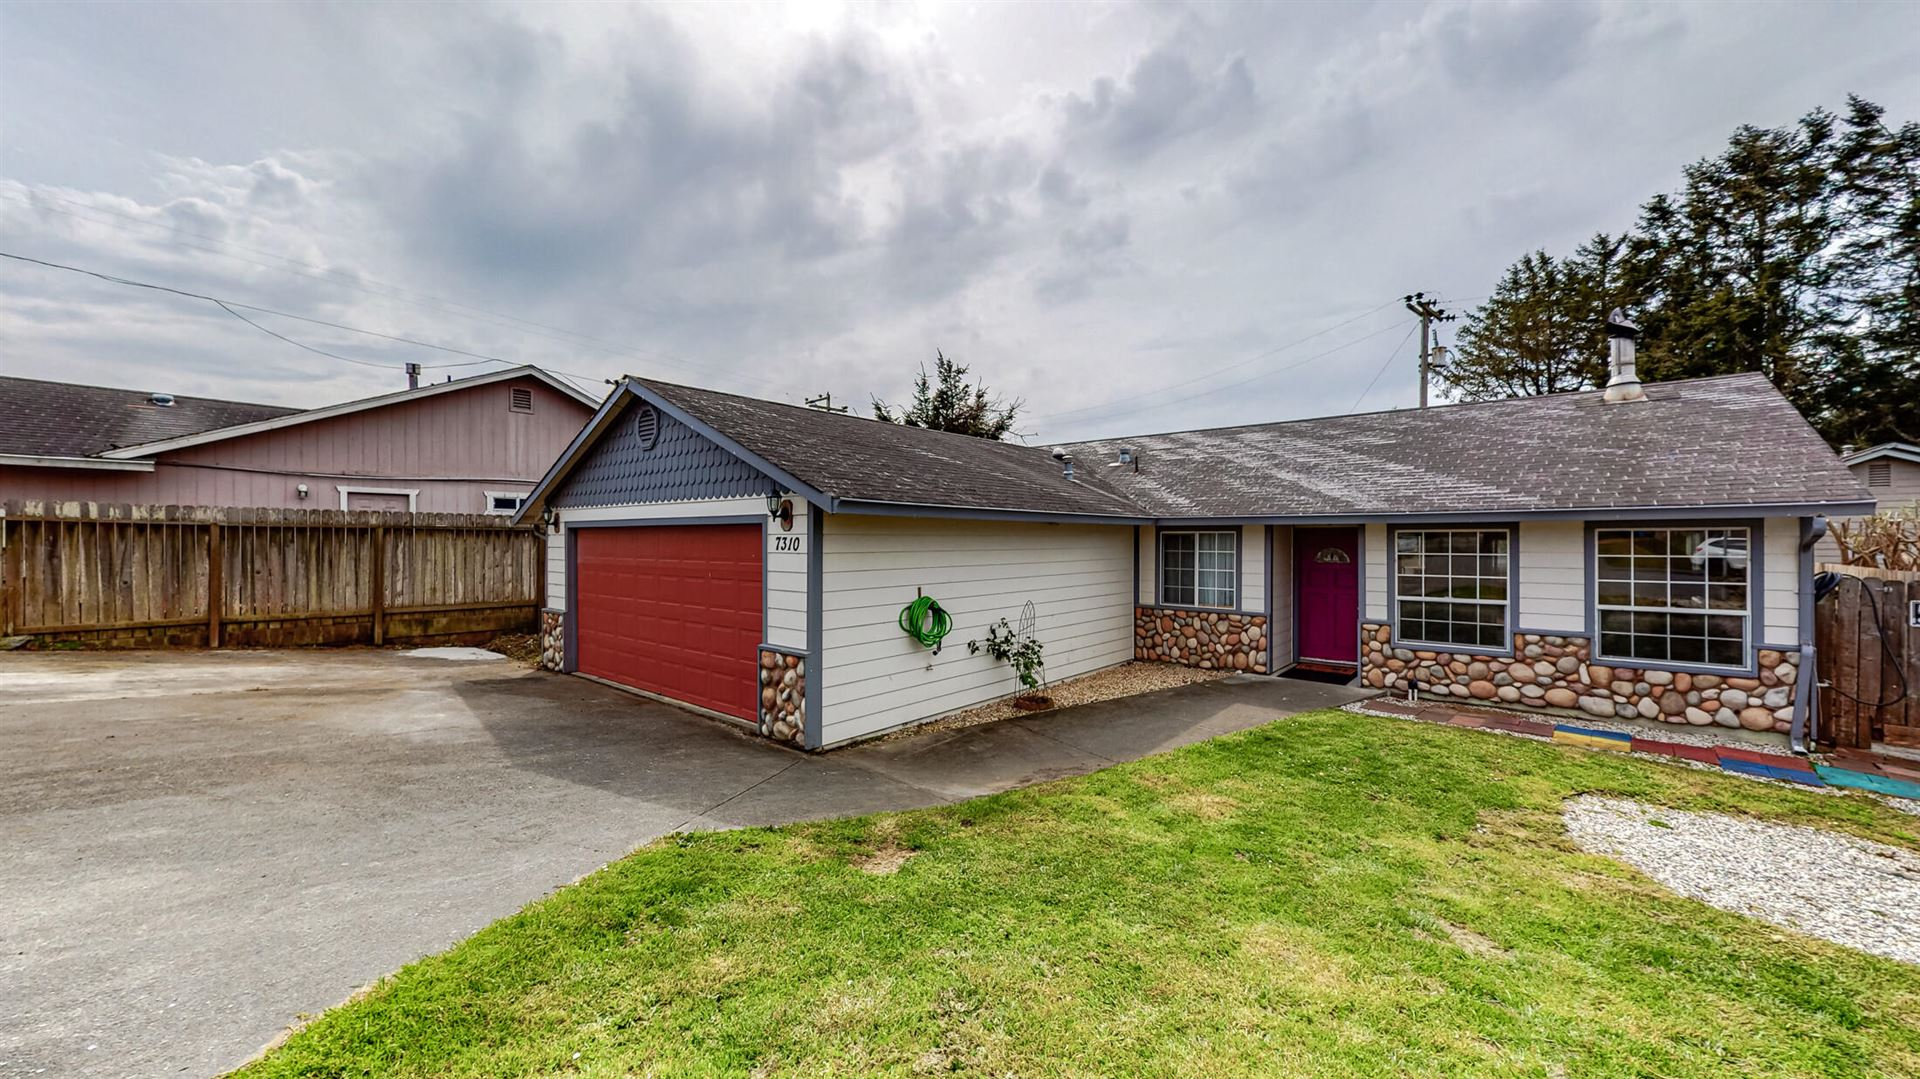 7310 David Court, Eureka, CA 95503 - MLS#: 258724